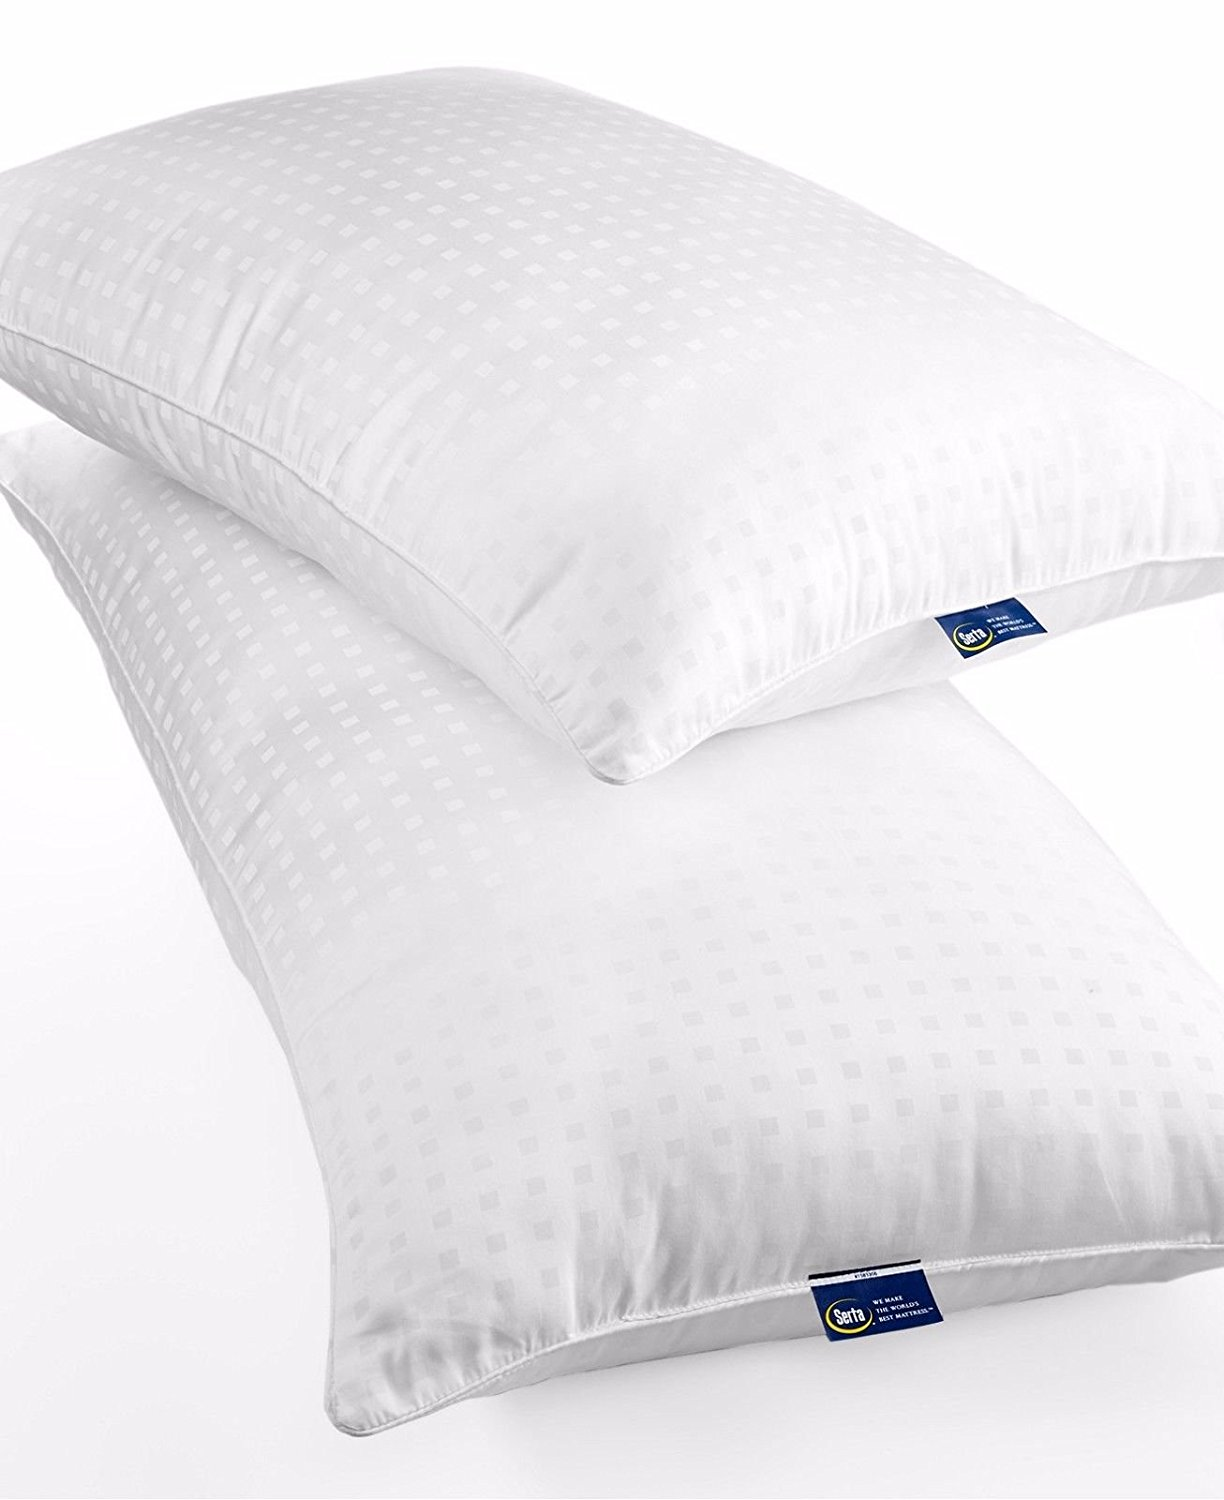 Ikea Gosa Pinje Buy Ikea Gosa Syren Queen Side Sleeper Pillow In Cheap Price On Alibaba.com